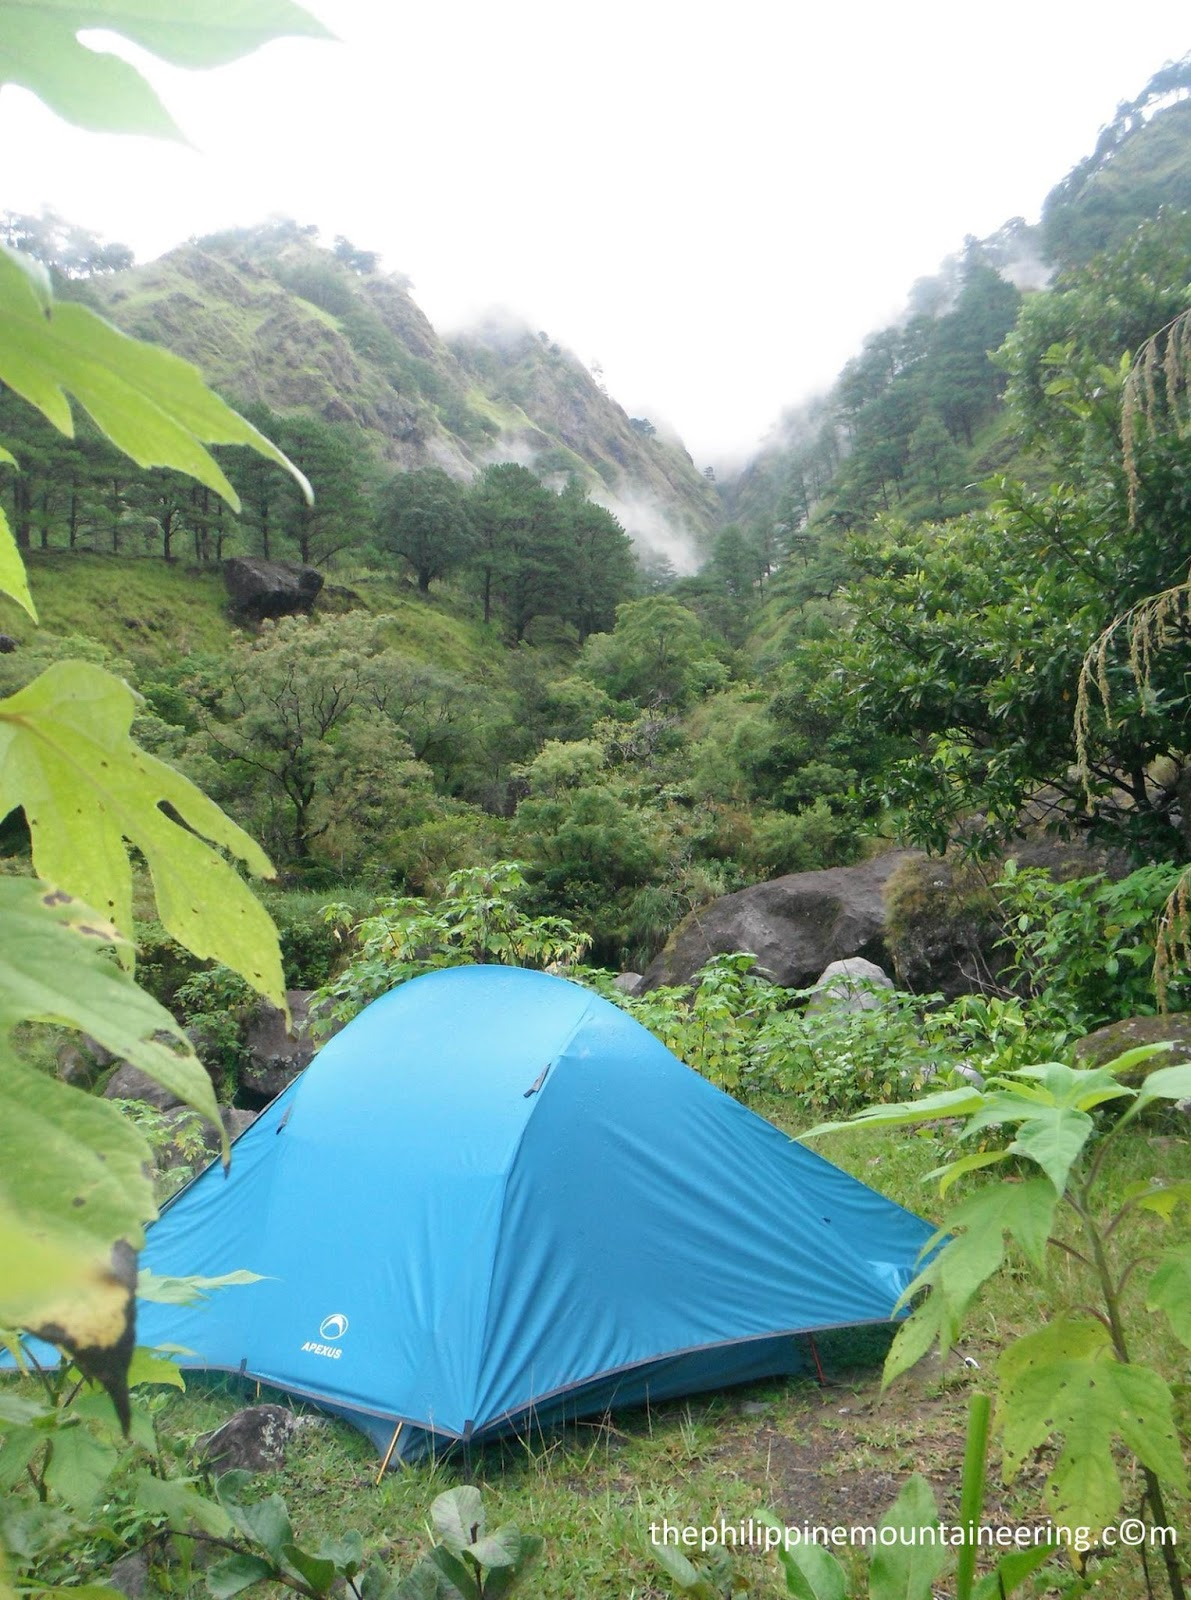 Upon reaching the Edet River c&site we immediately enc& using the Apexus tent Halcon model. While cooking the dinner our guide Sergio left us and ... & The Philippine Mountaineering